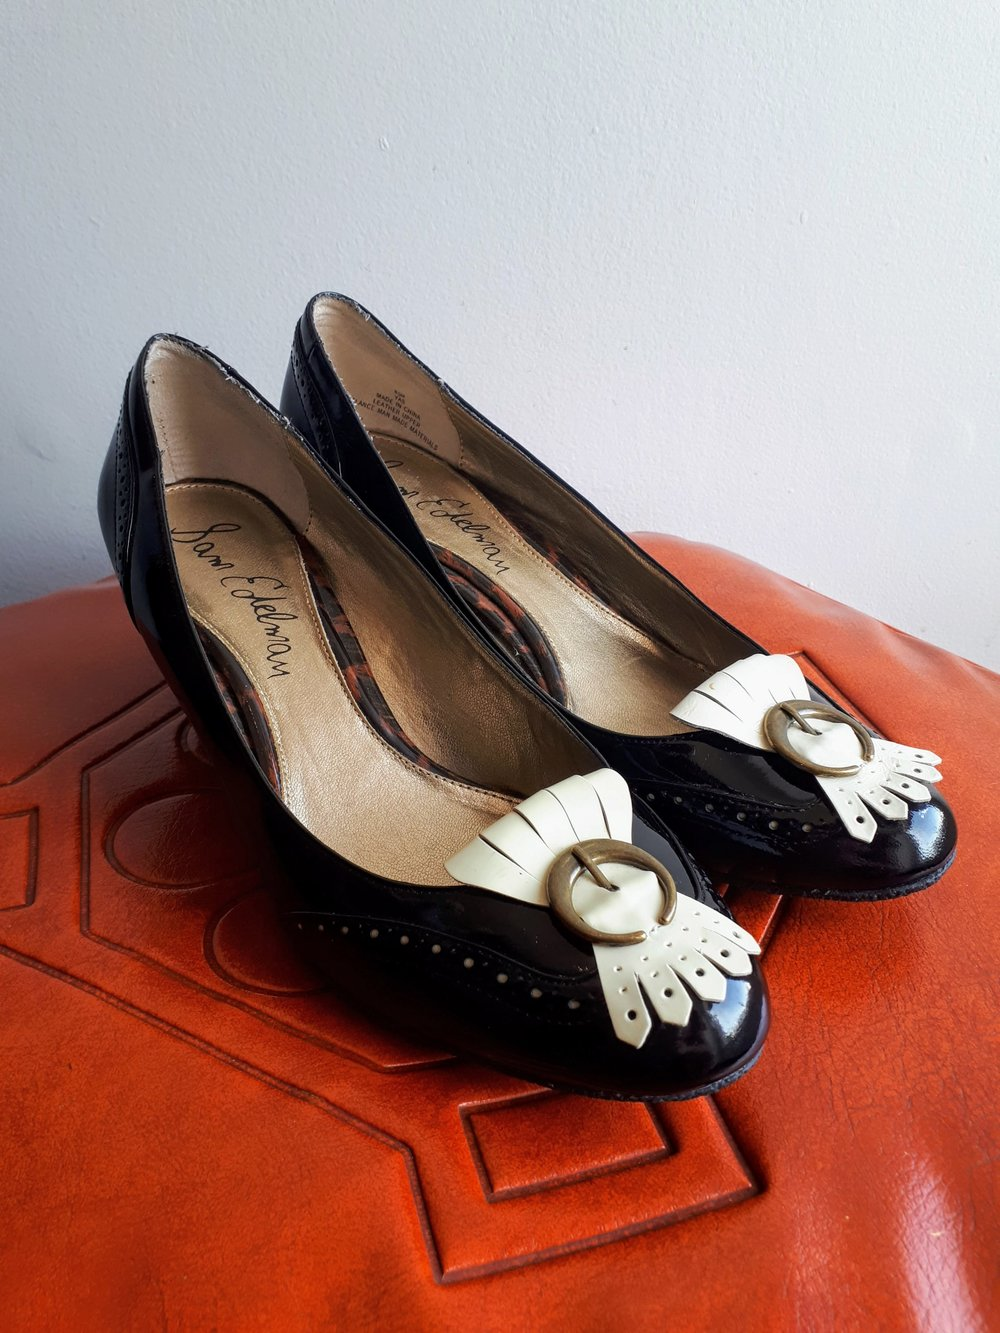 Sam Edleman shoes; Size 8.5, $46